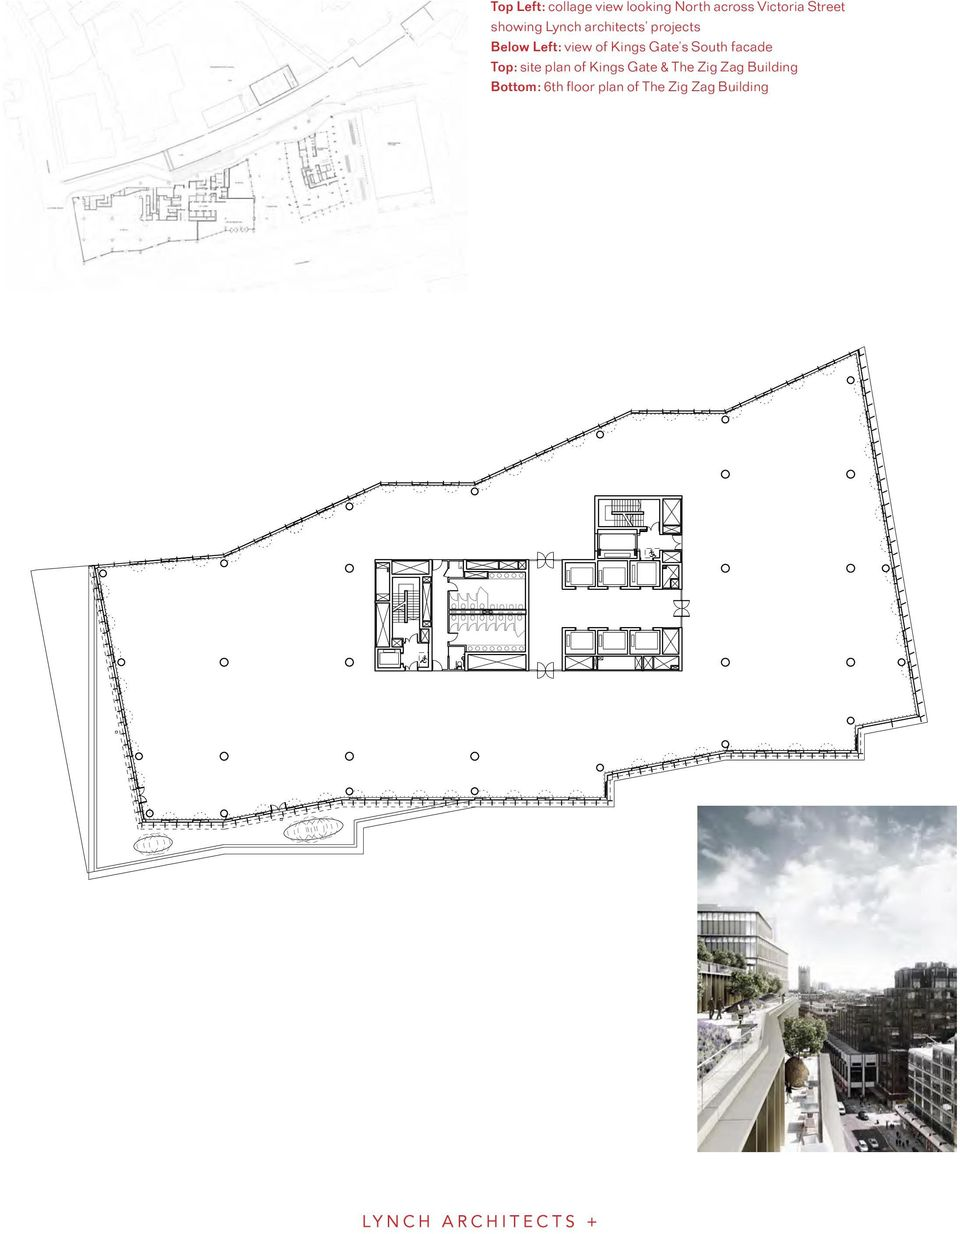 Gate s South facade Top: site plan of Kings Gate & The Zig